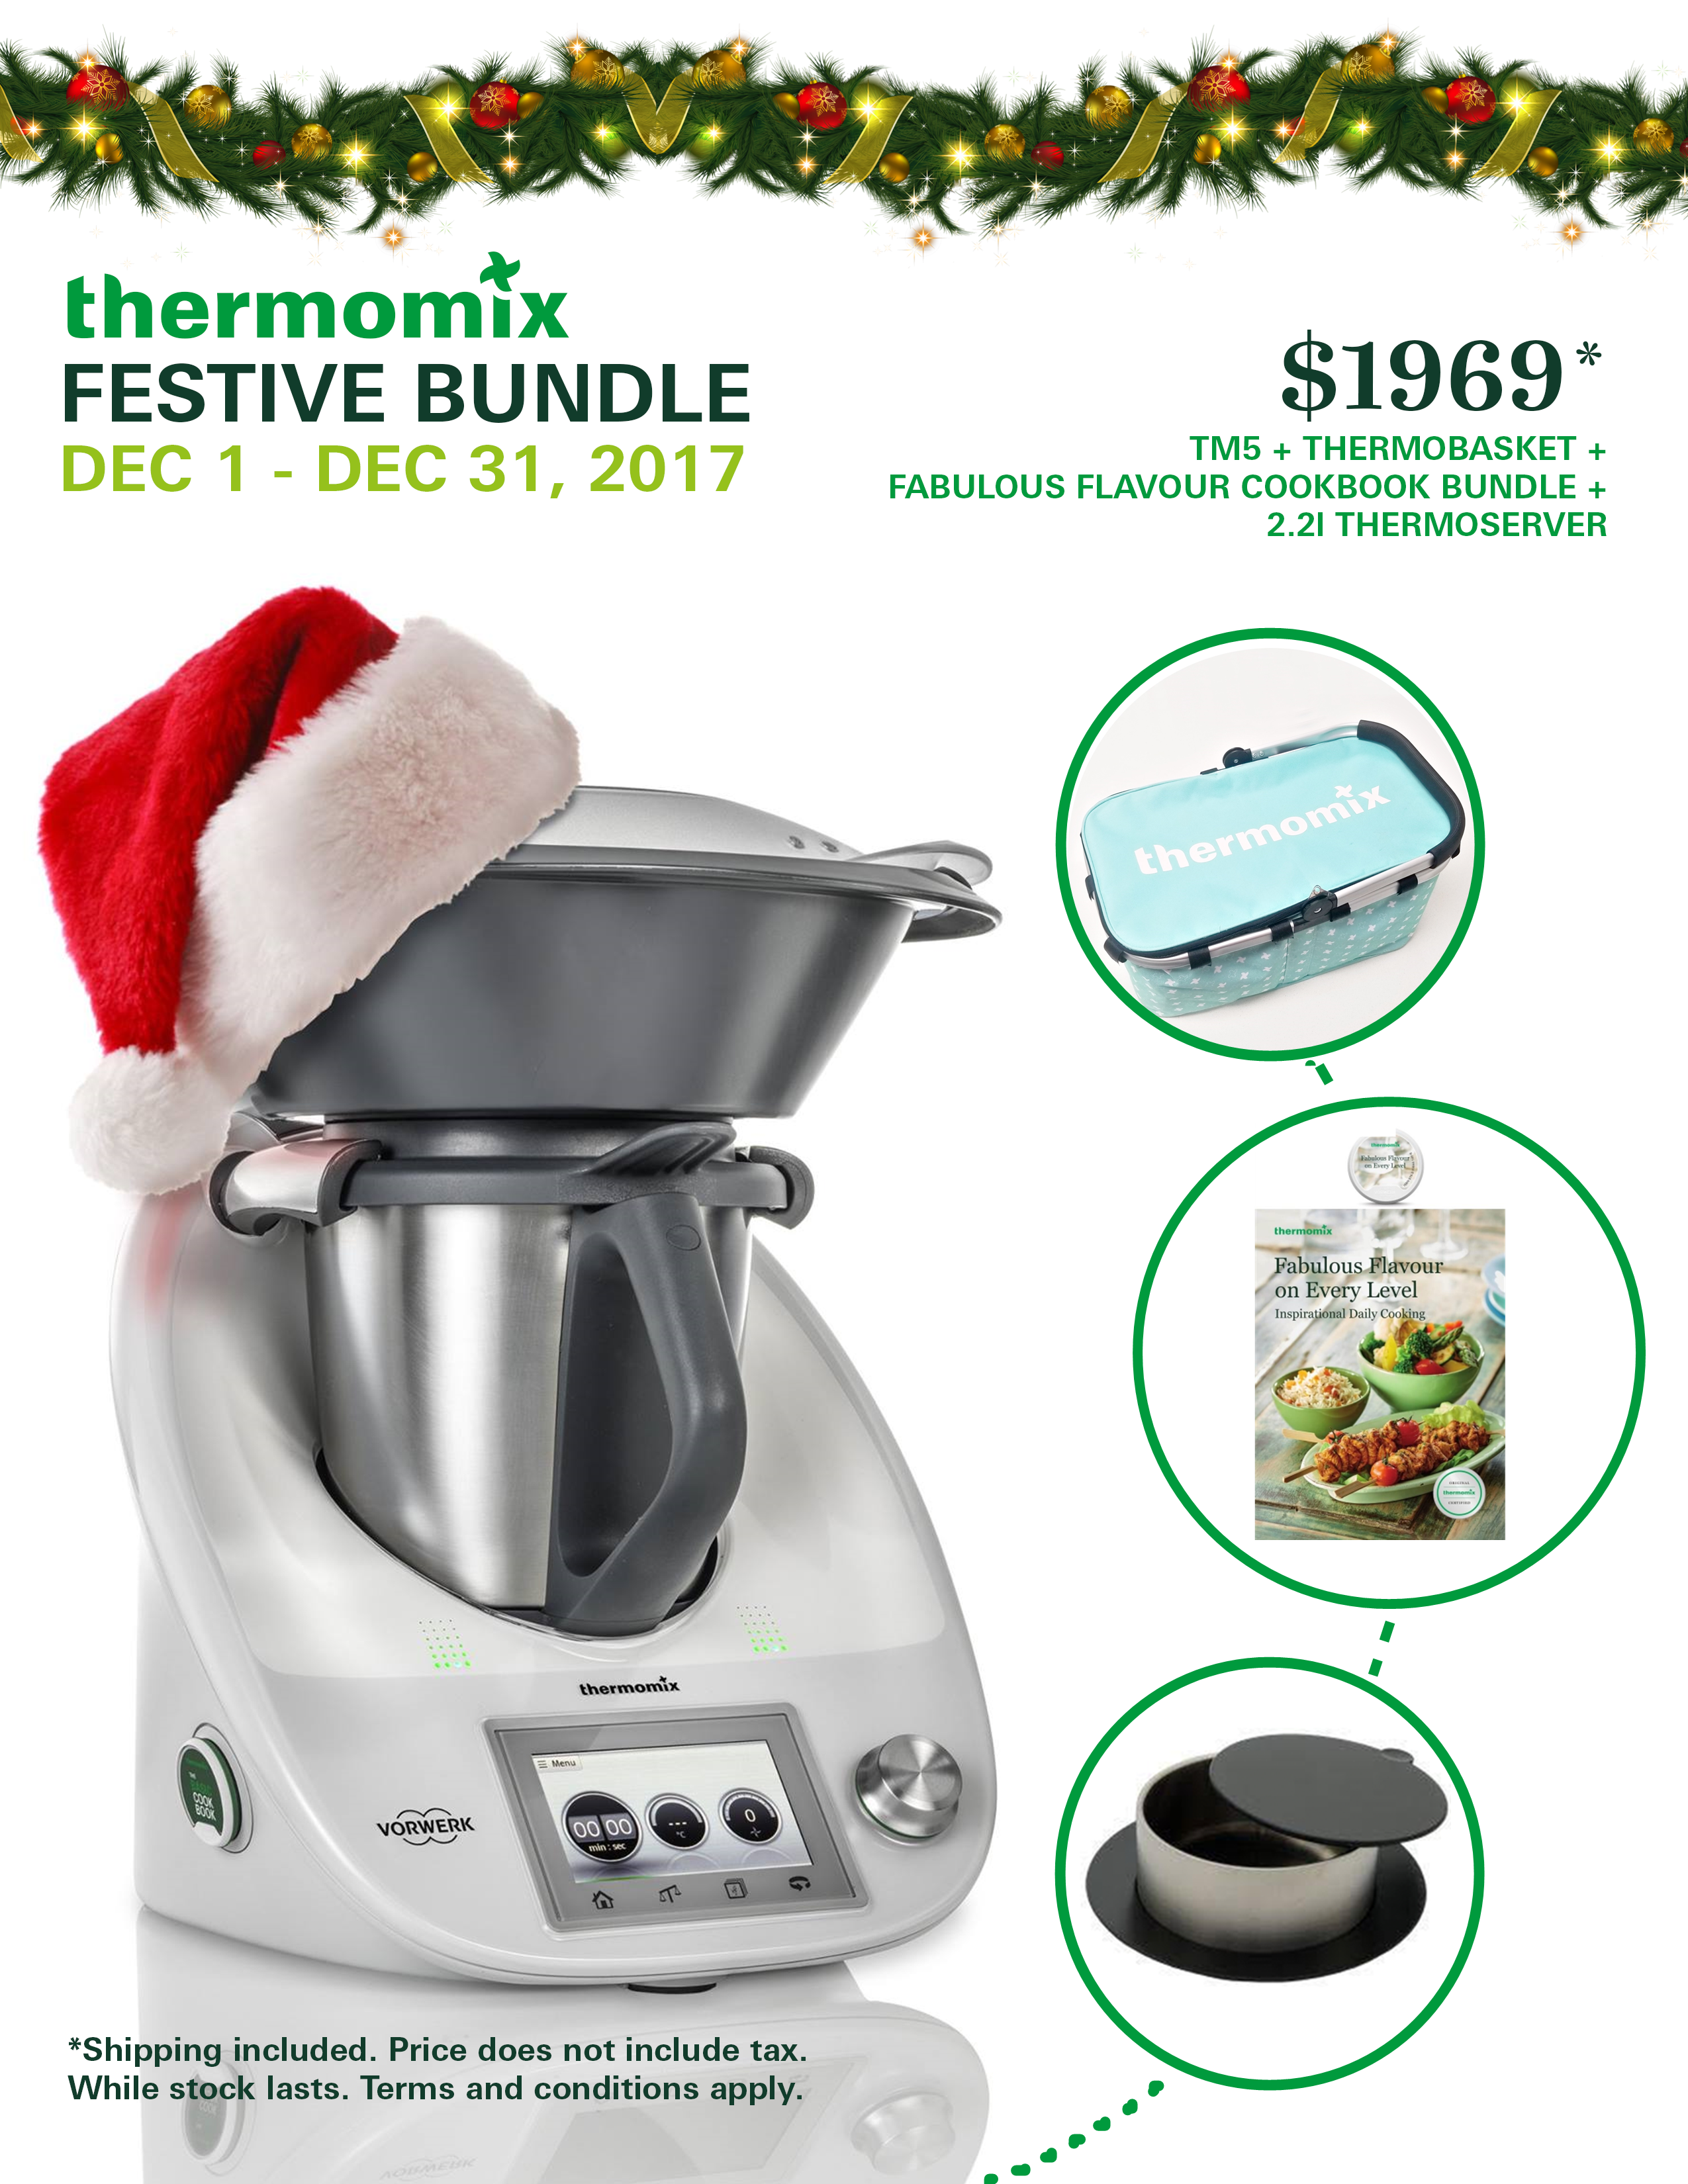 Buy a Thermomix for Christmas! The time is now! Thermomix Customer Incentive December 2017 includes two great free gifts and other options. #Thermomix